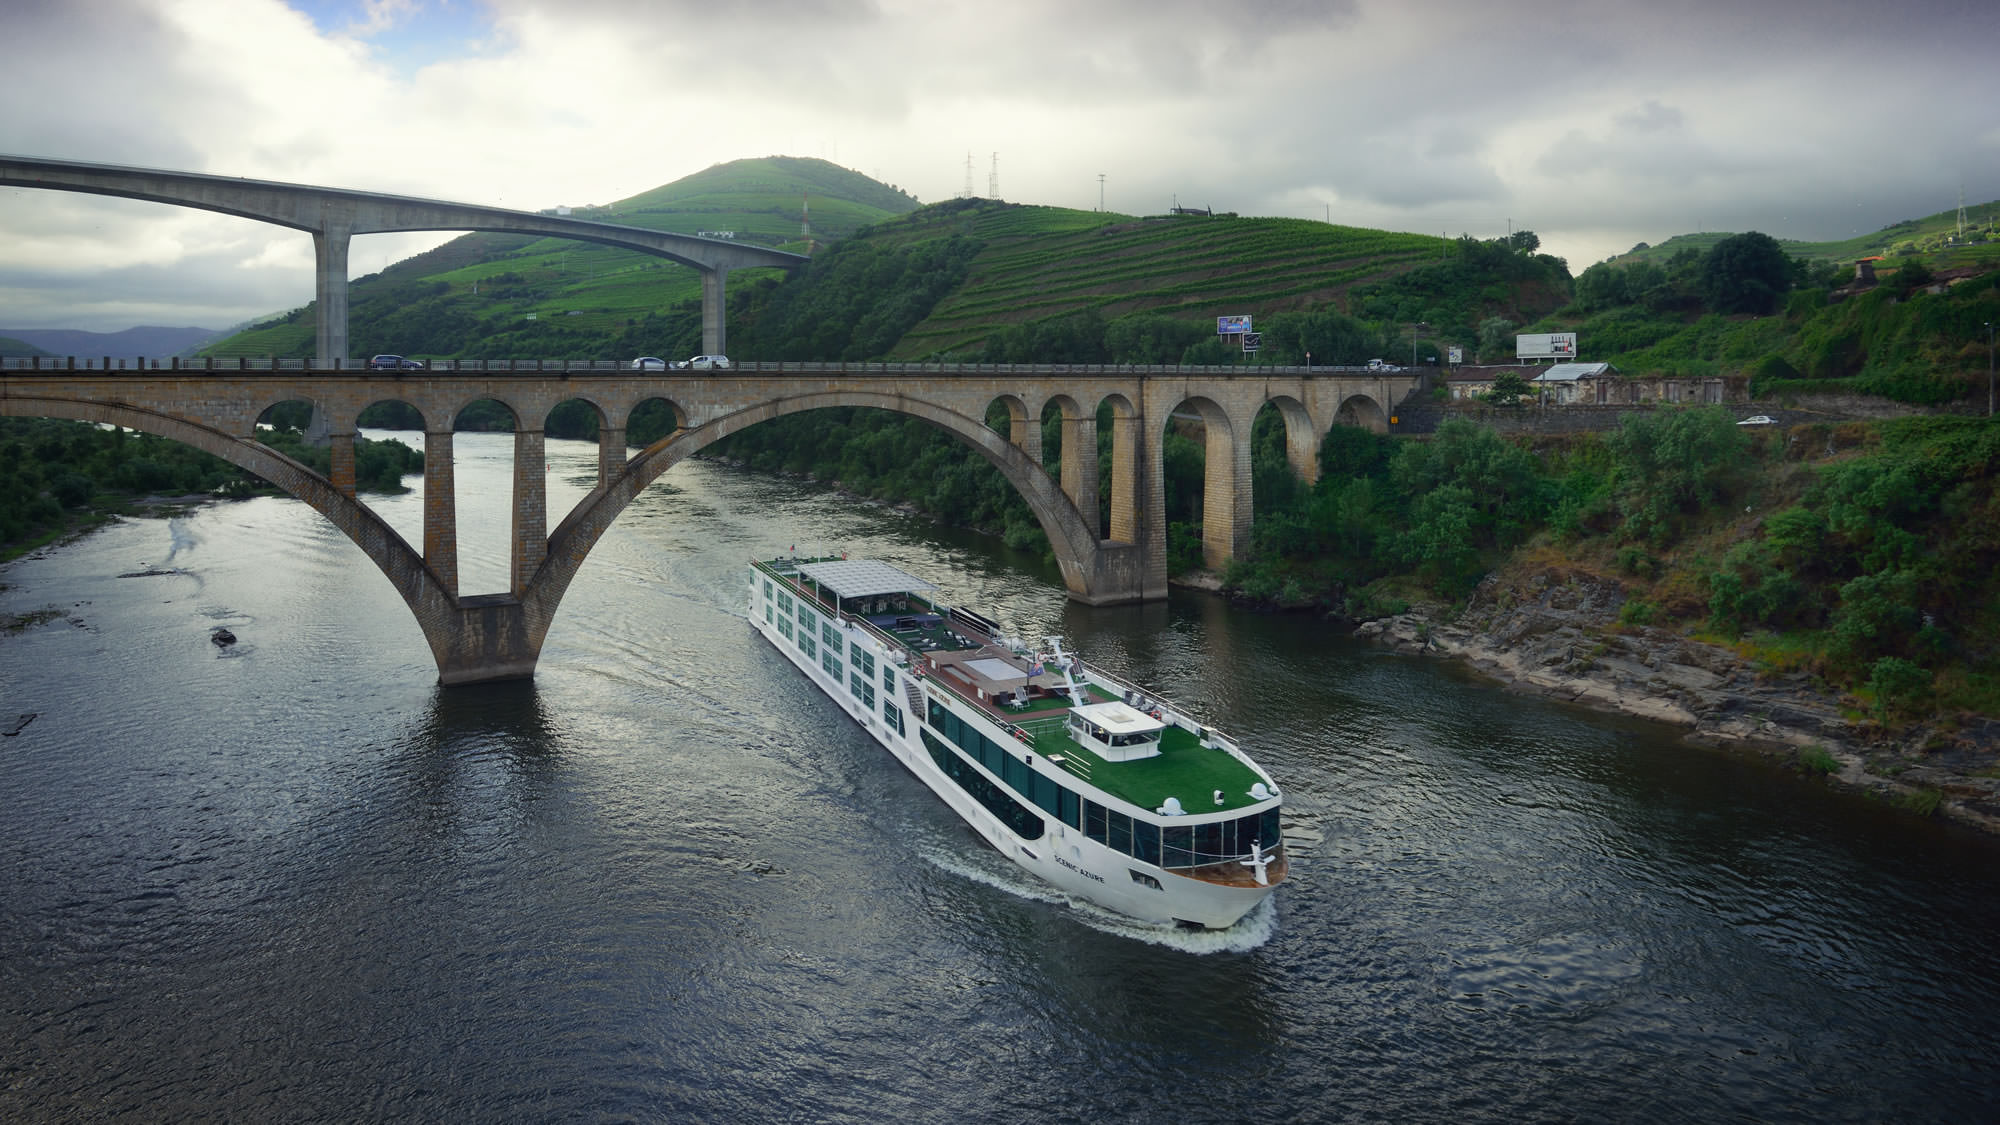 Scenic Azure on the Douro. Photo courtesy of Scenic.